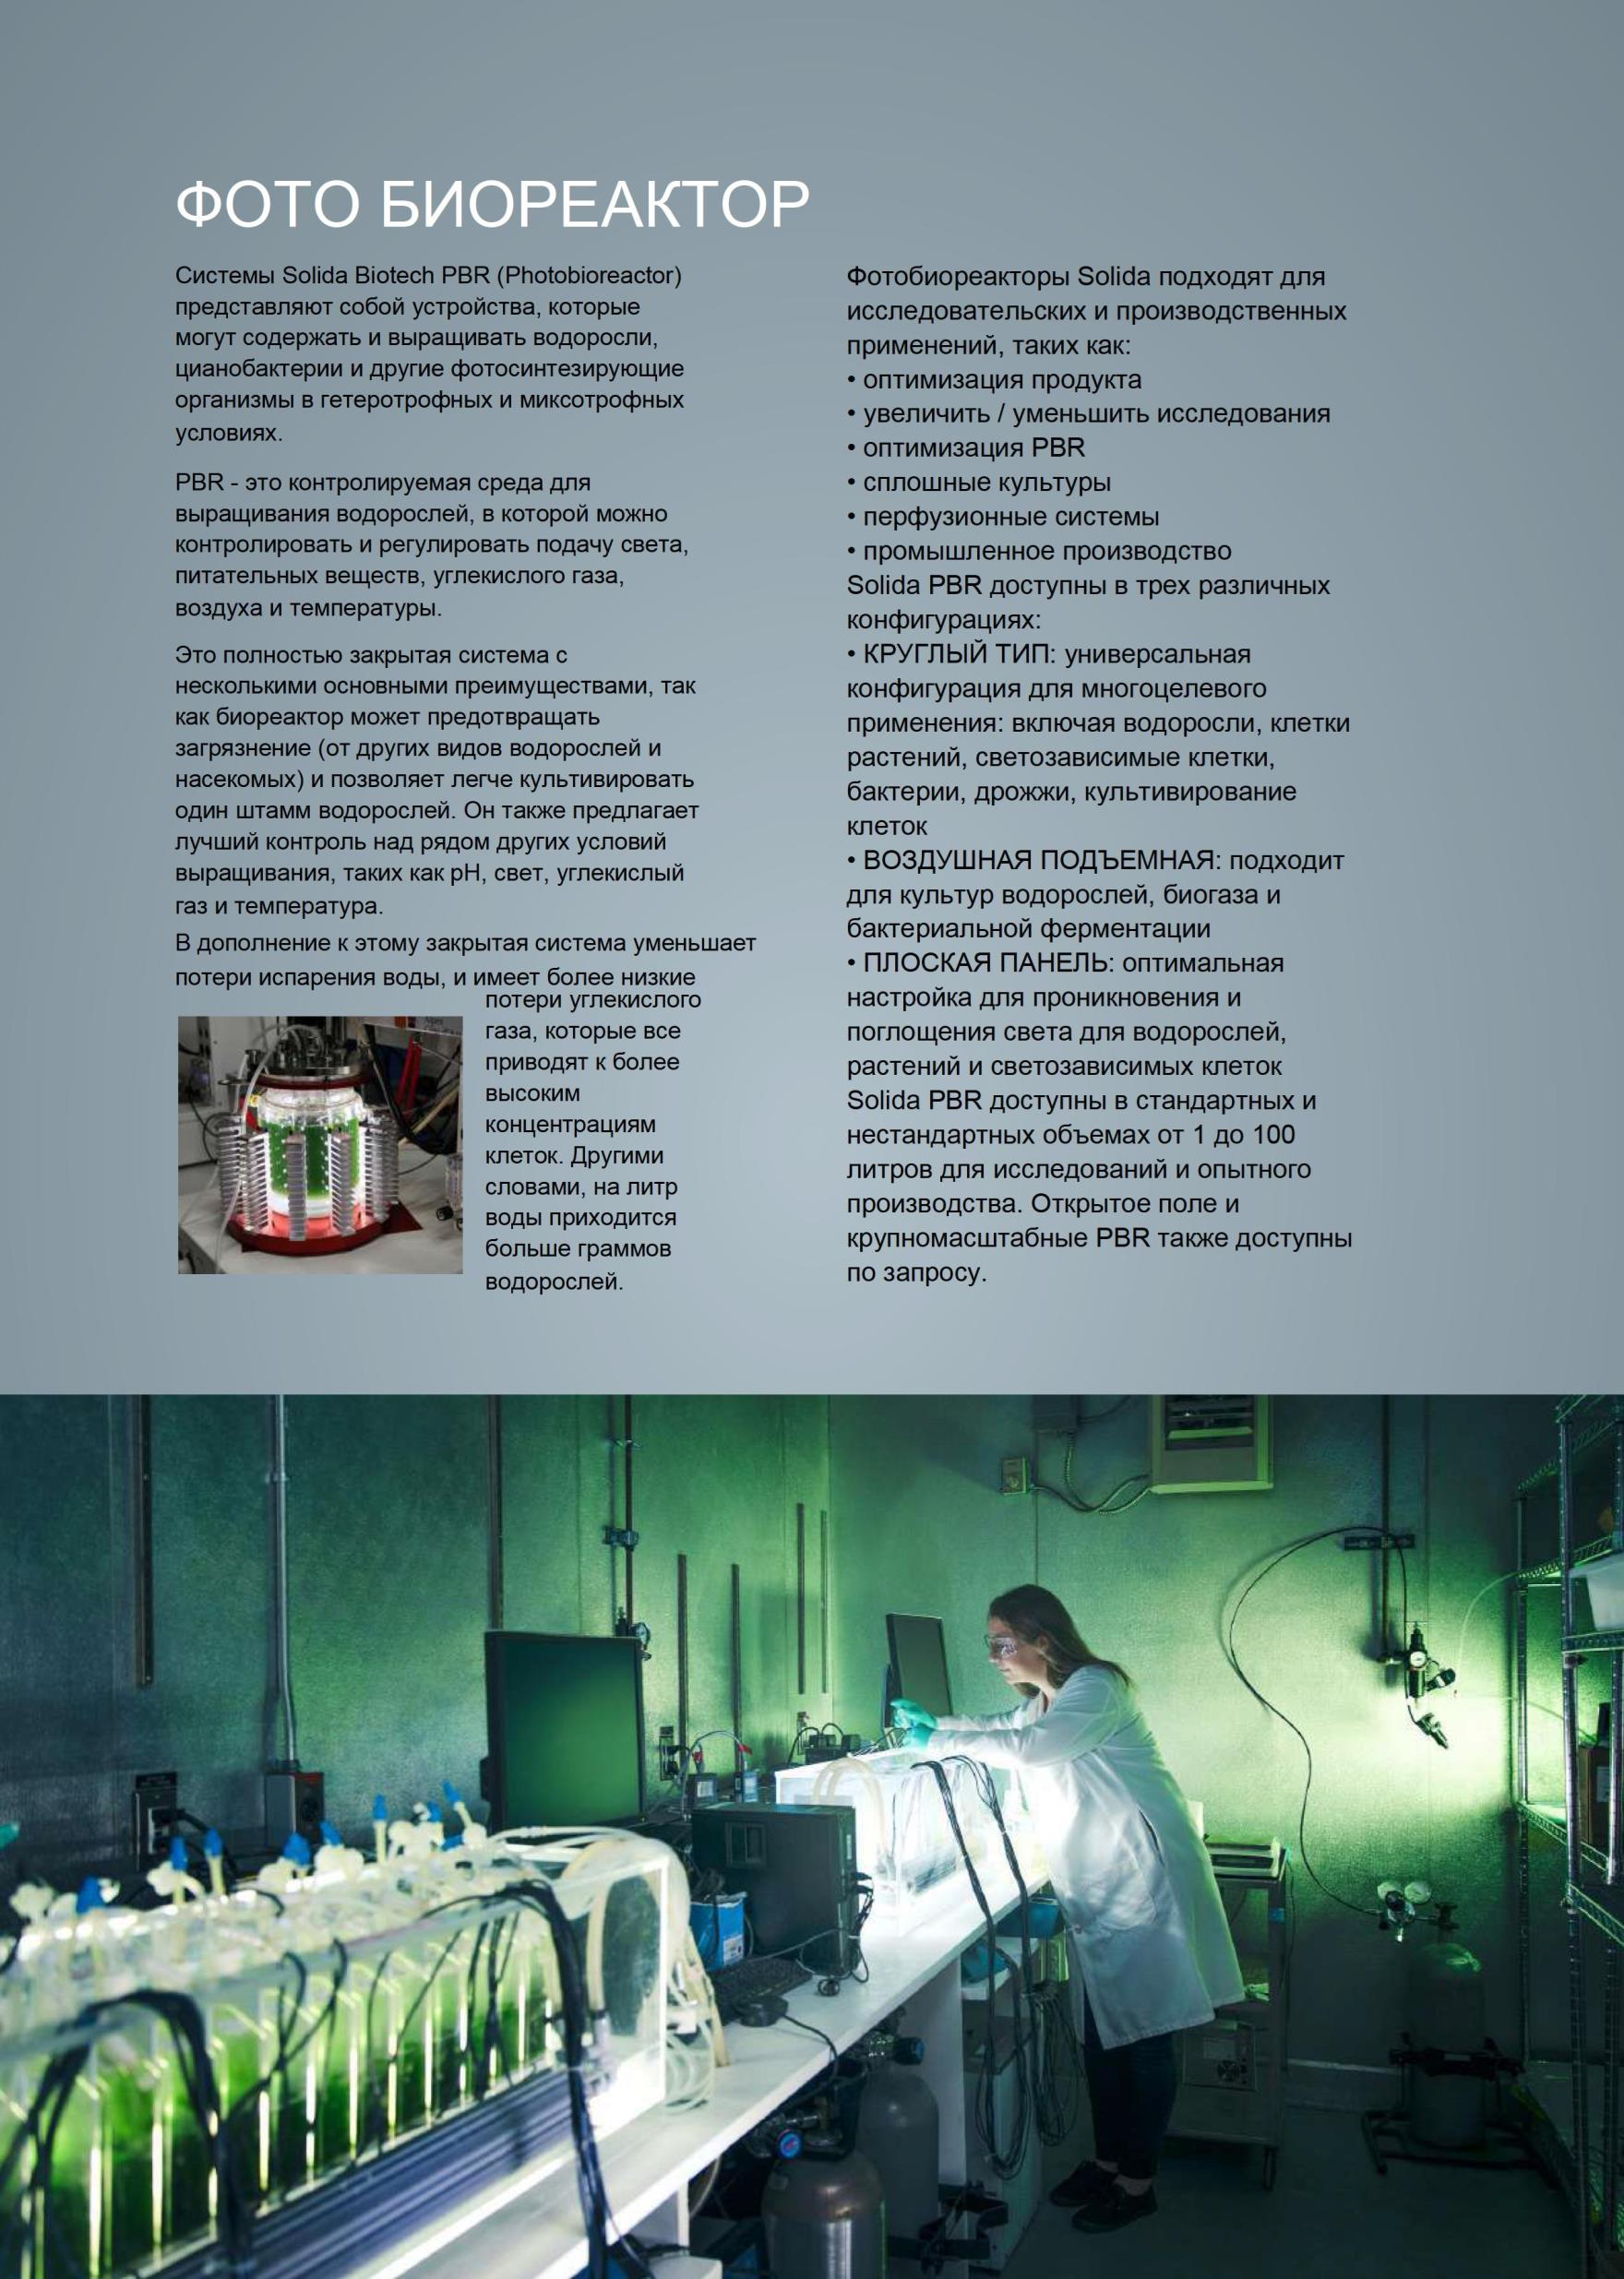 General Catalogue Solida Biotech GmBH2_compressed (2 - 0011